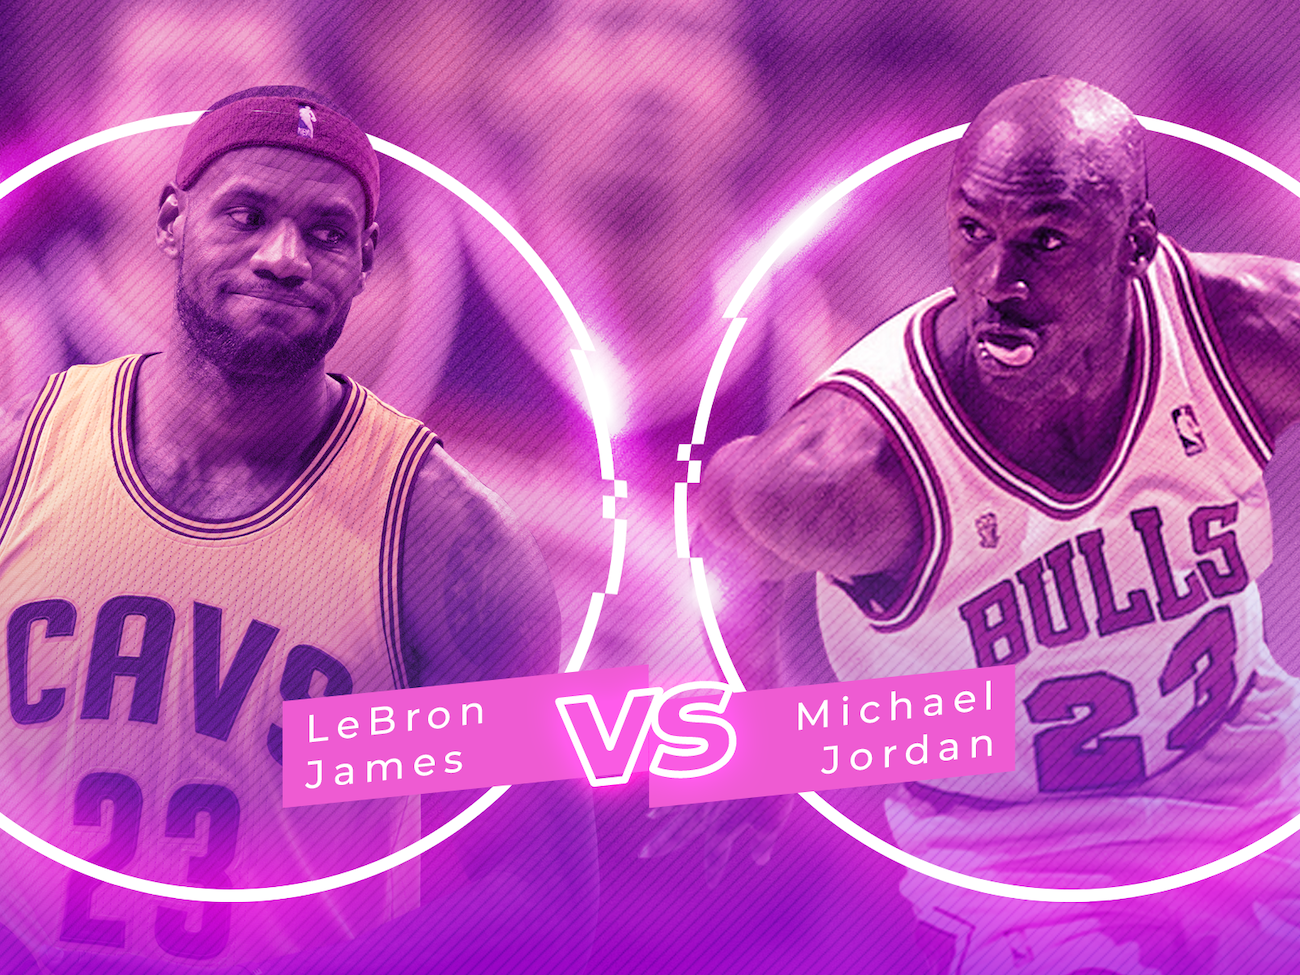 LeBron James vs. Michael Jordan: Who Is The Greatest Of All Time?